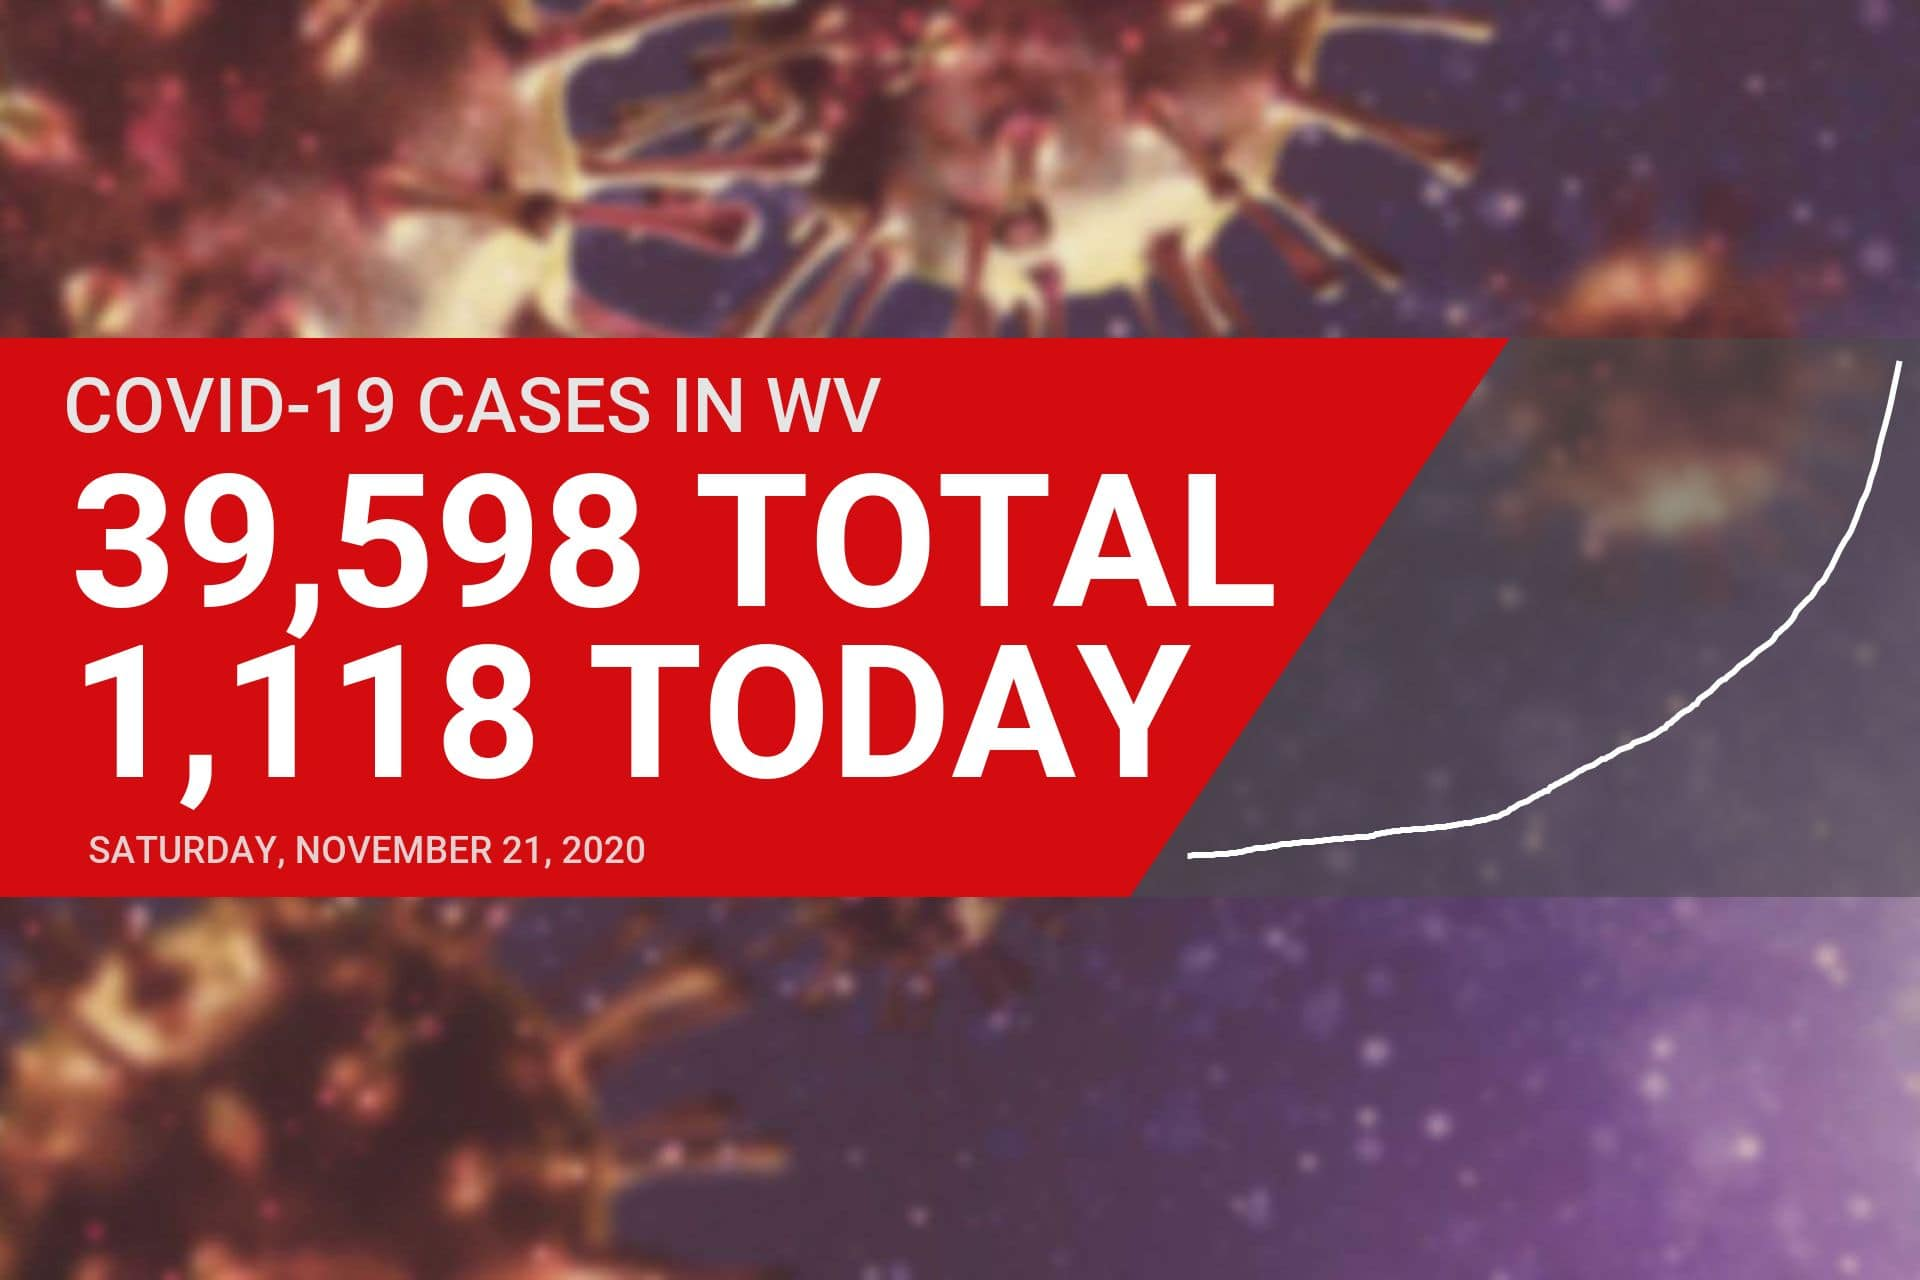 More than 100 COVID-19 cases now active in Upshur County